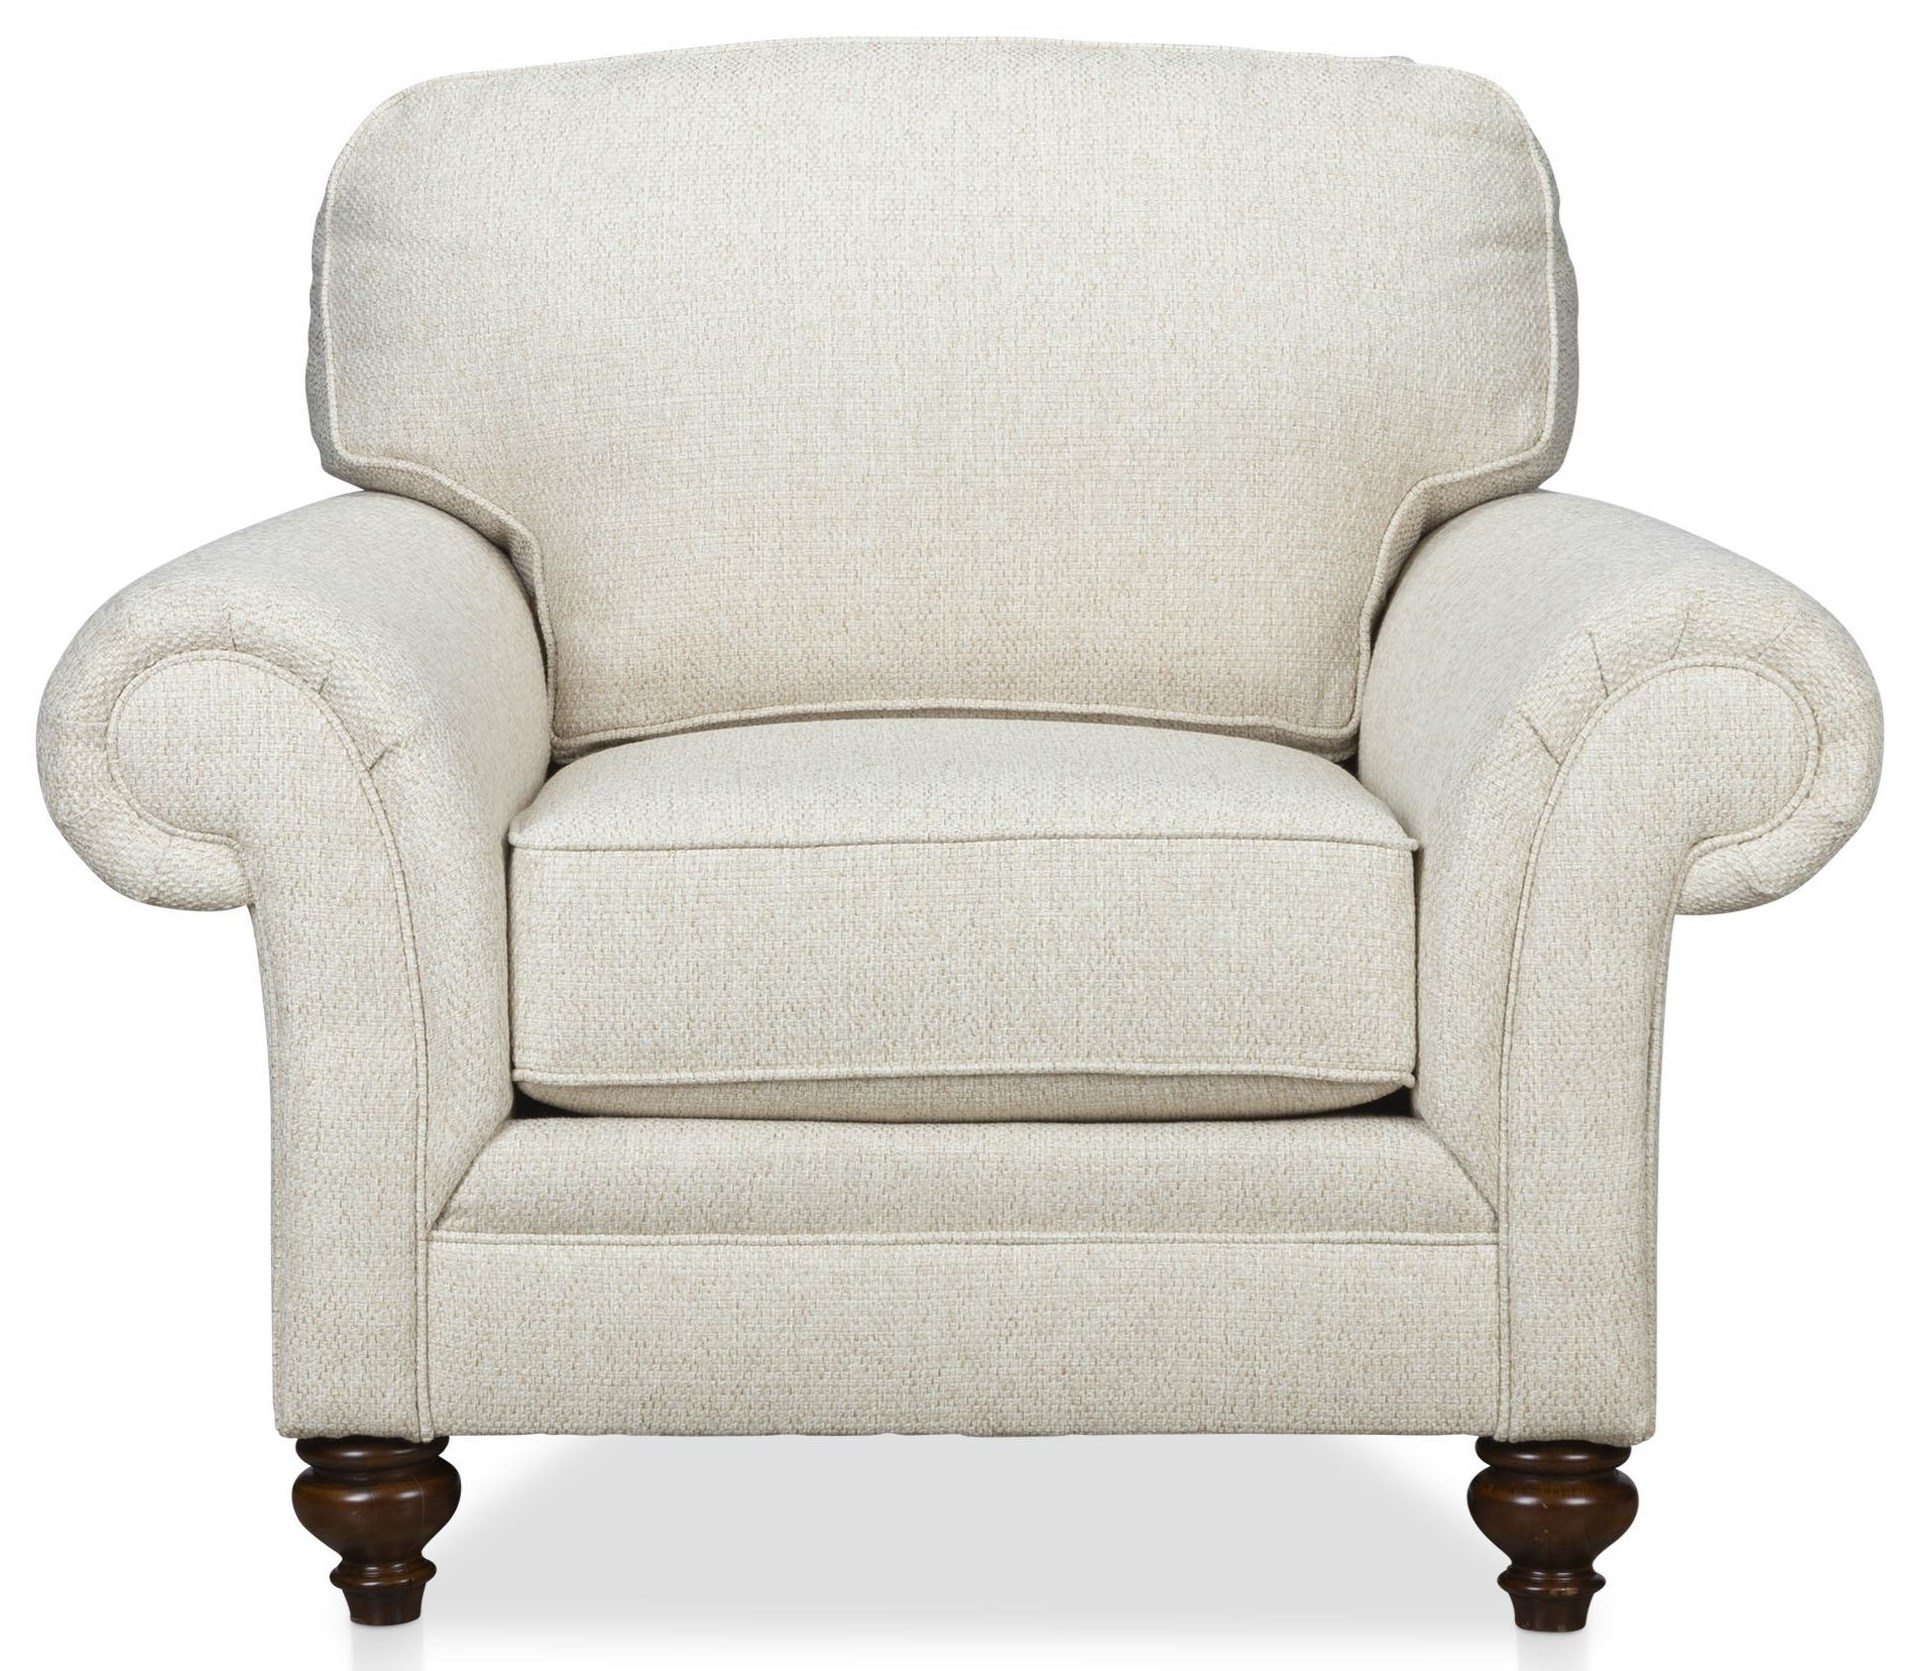 Larissa Rolled Arm Chair by Stone & Leigh Furniture at Baer's Furniture